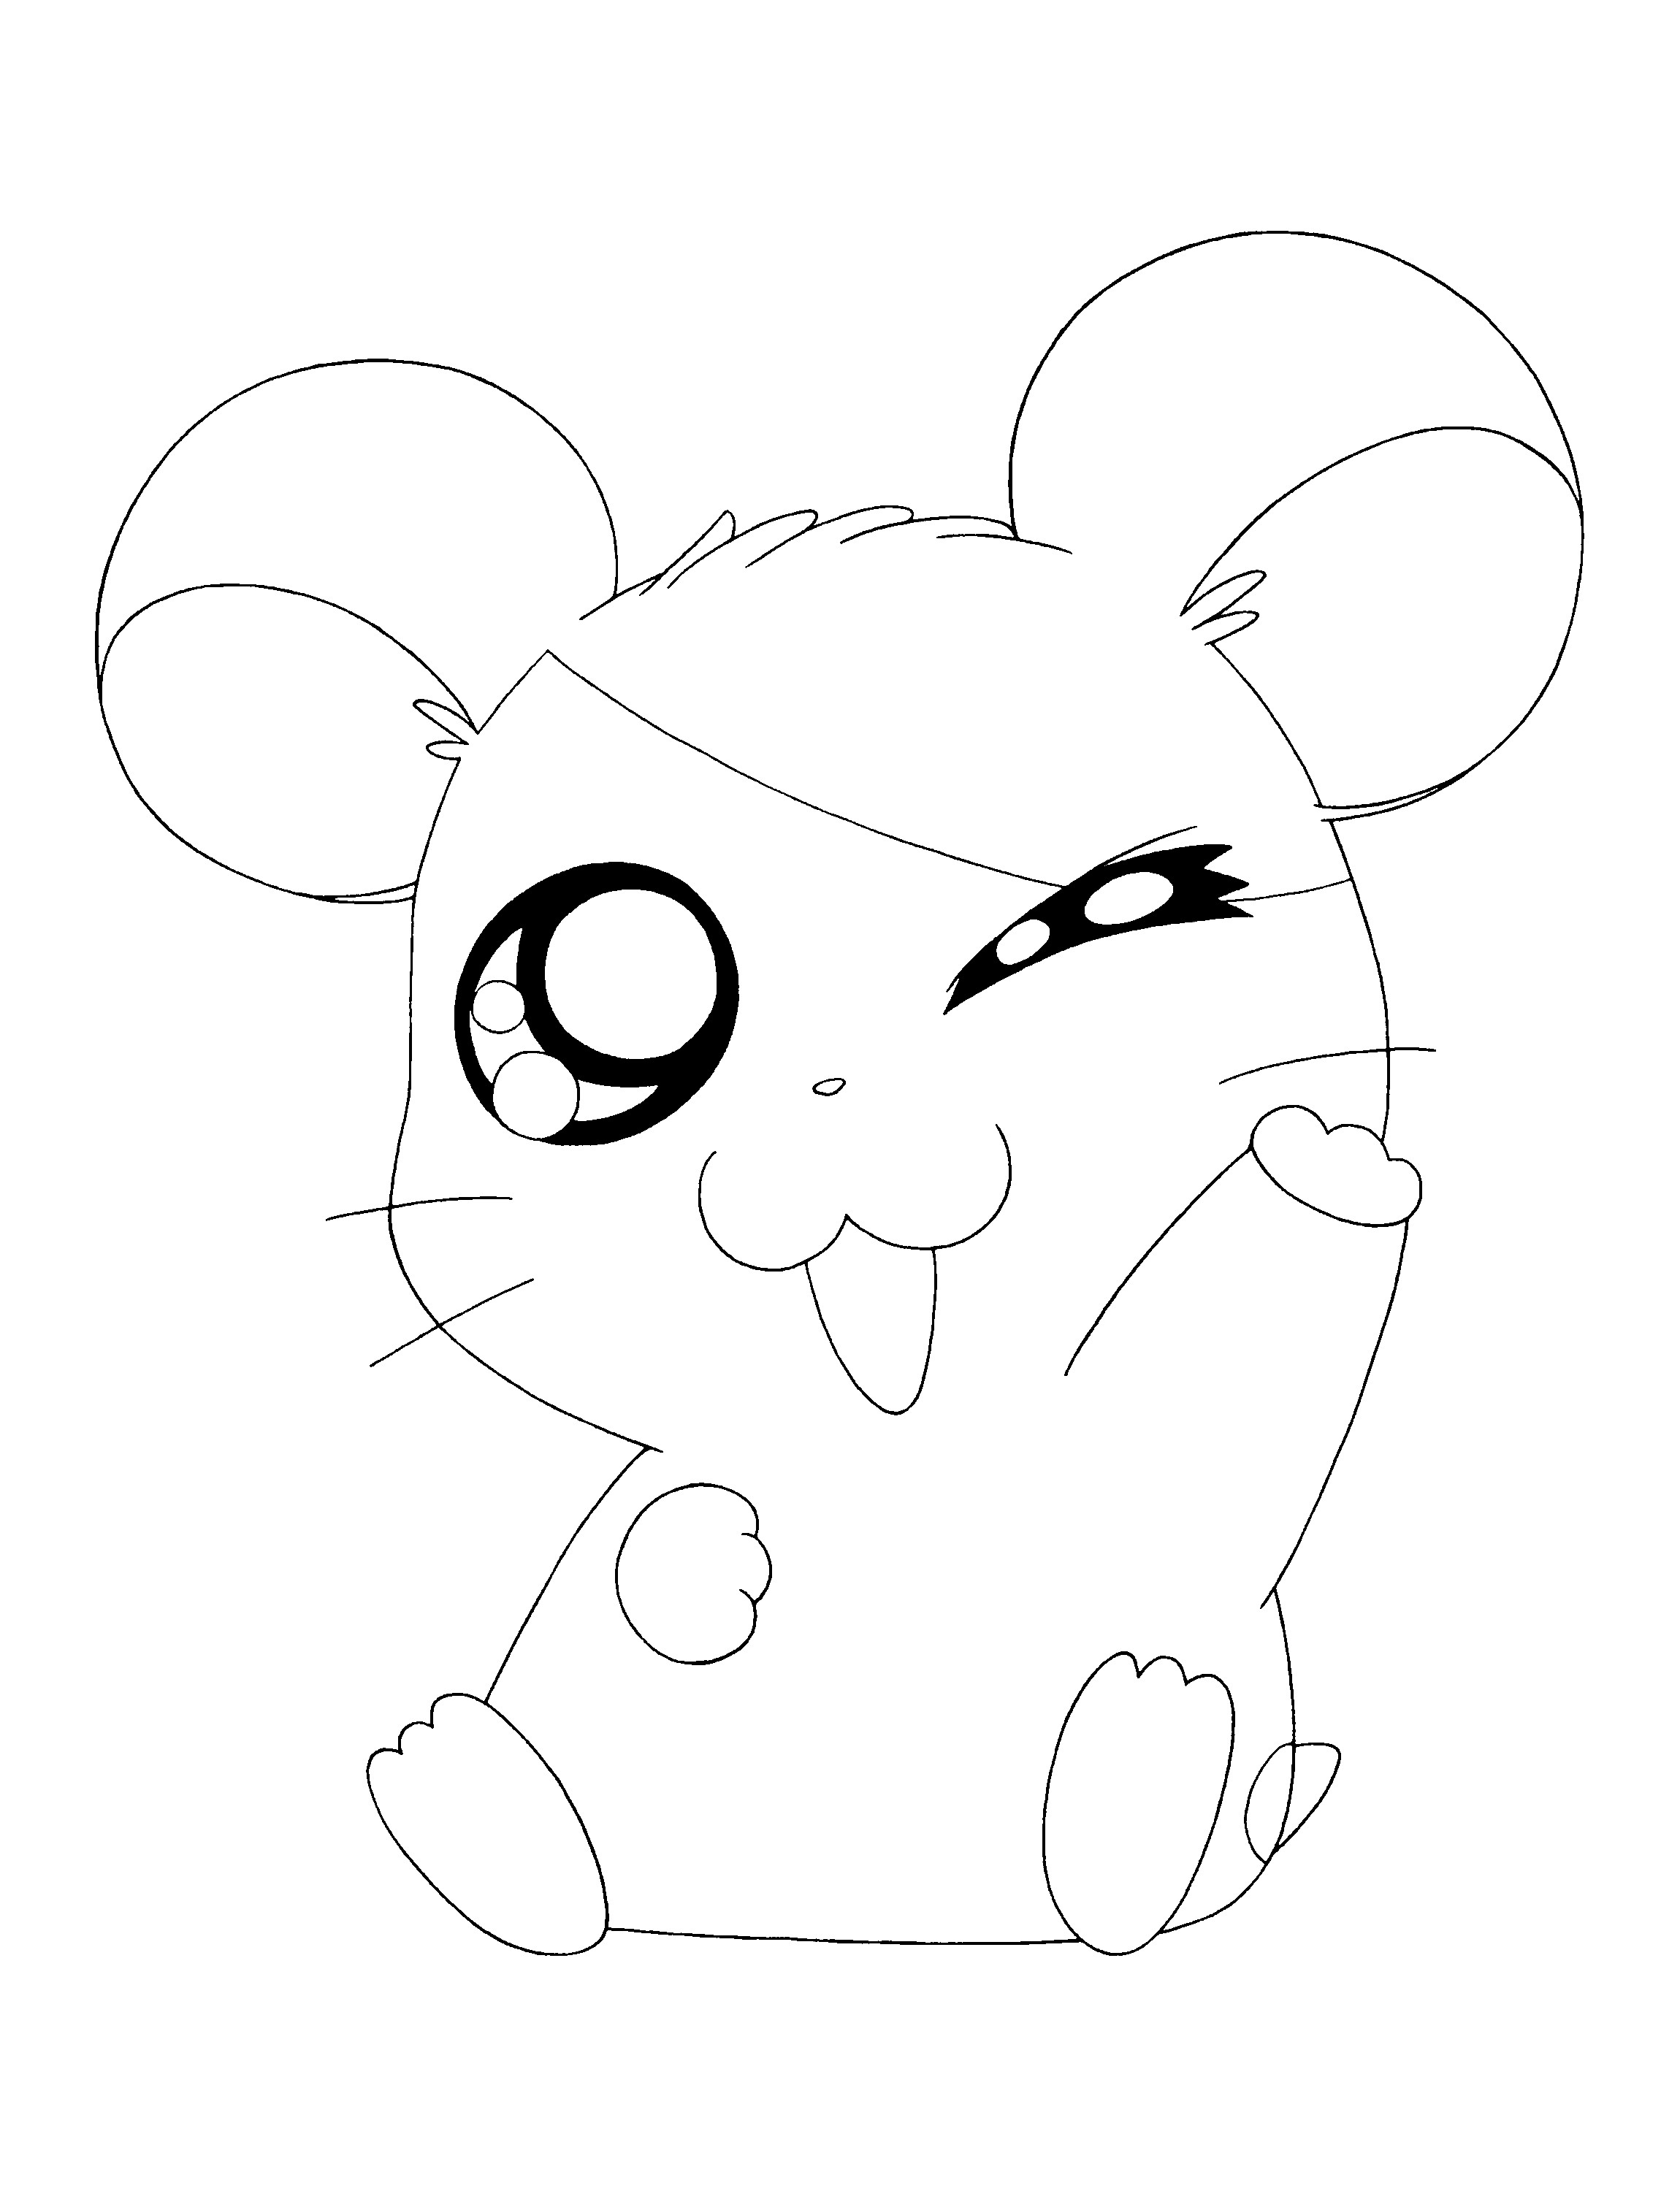 2300x3000 Best Of Hamster Free Page To Color Design Printable Coloring Sheet